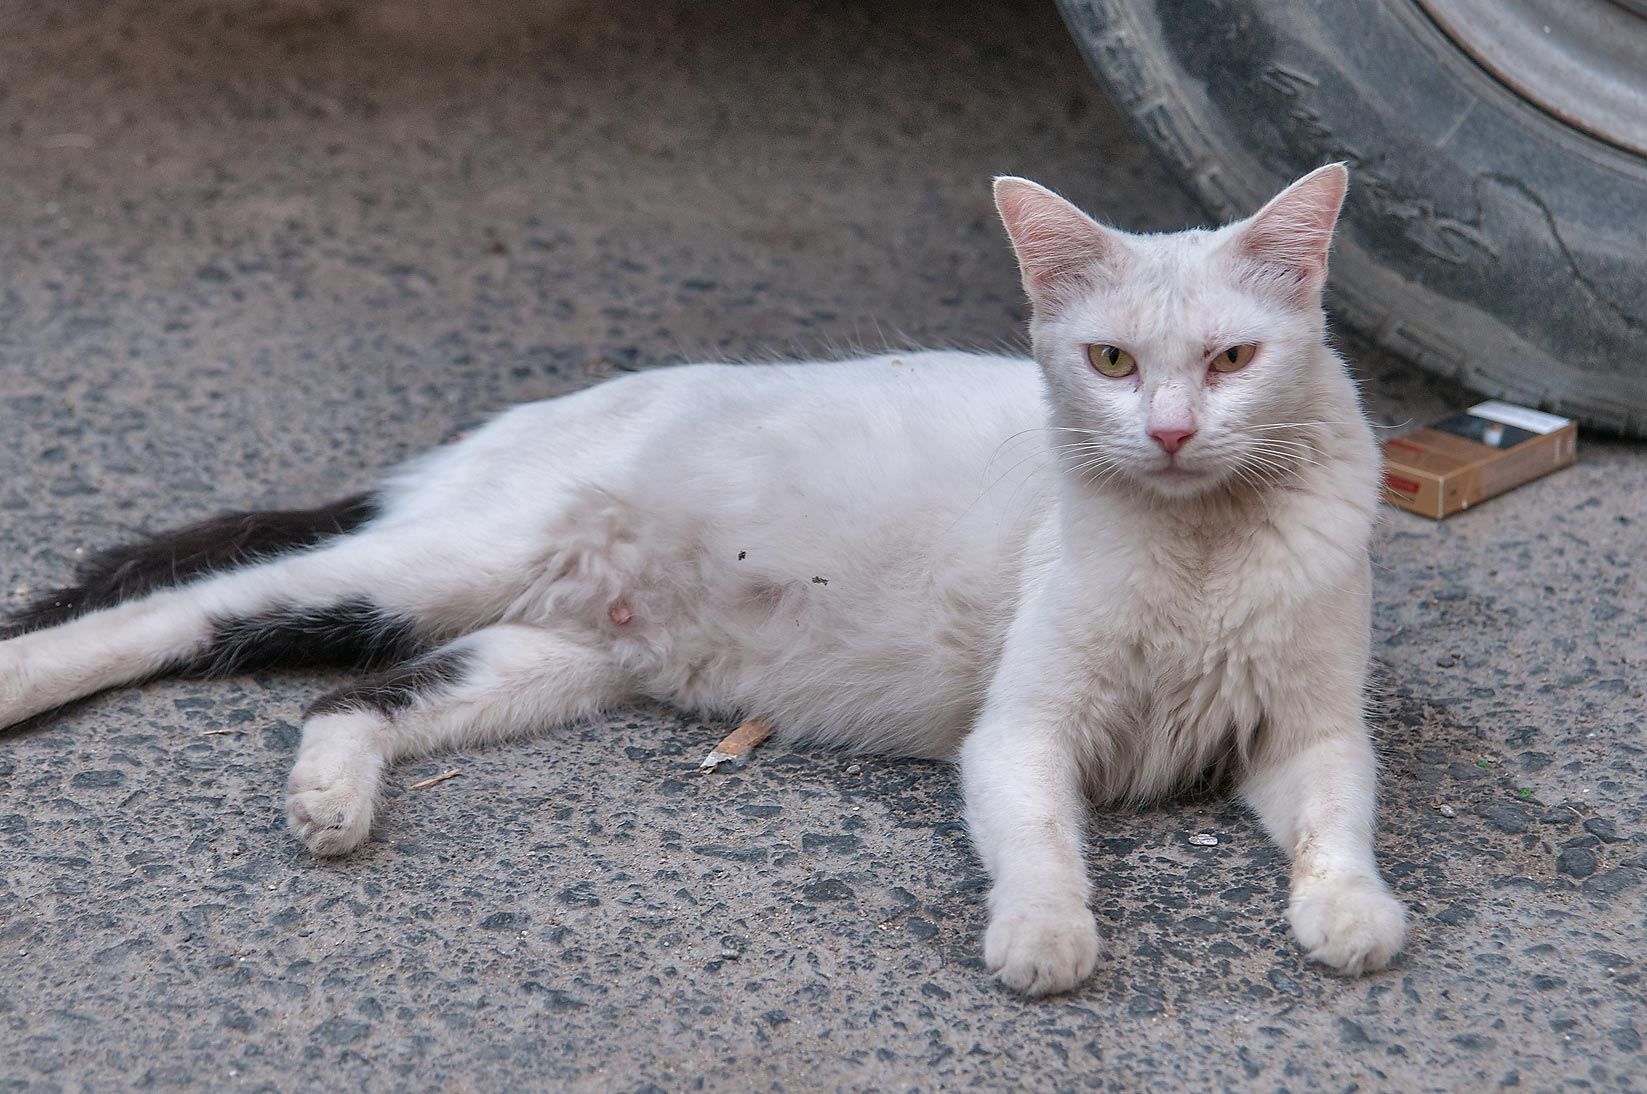 White cat resting near a car at Umm Wishah St., Musheirib area. Doha, Qatar